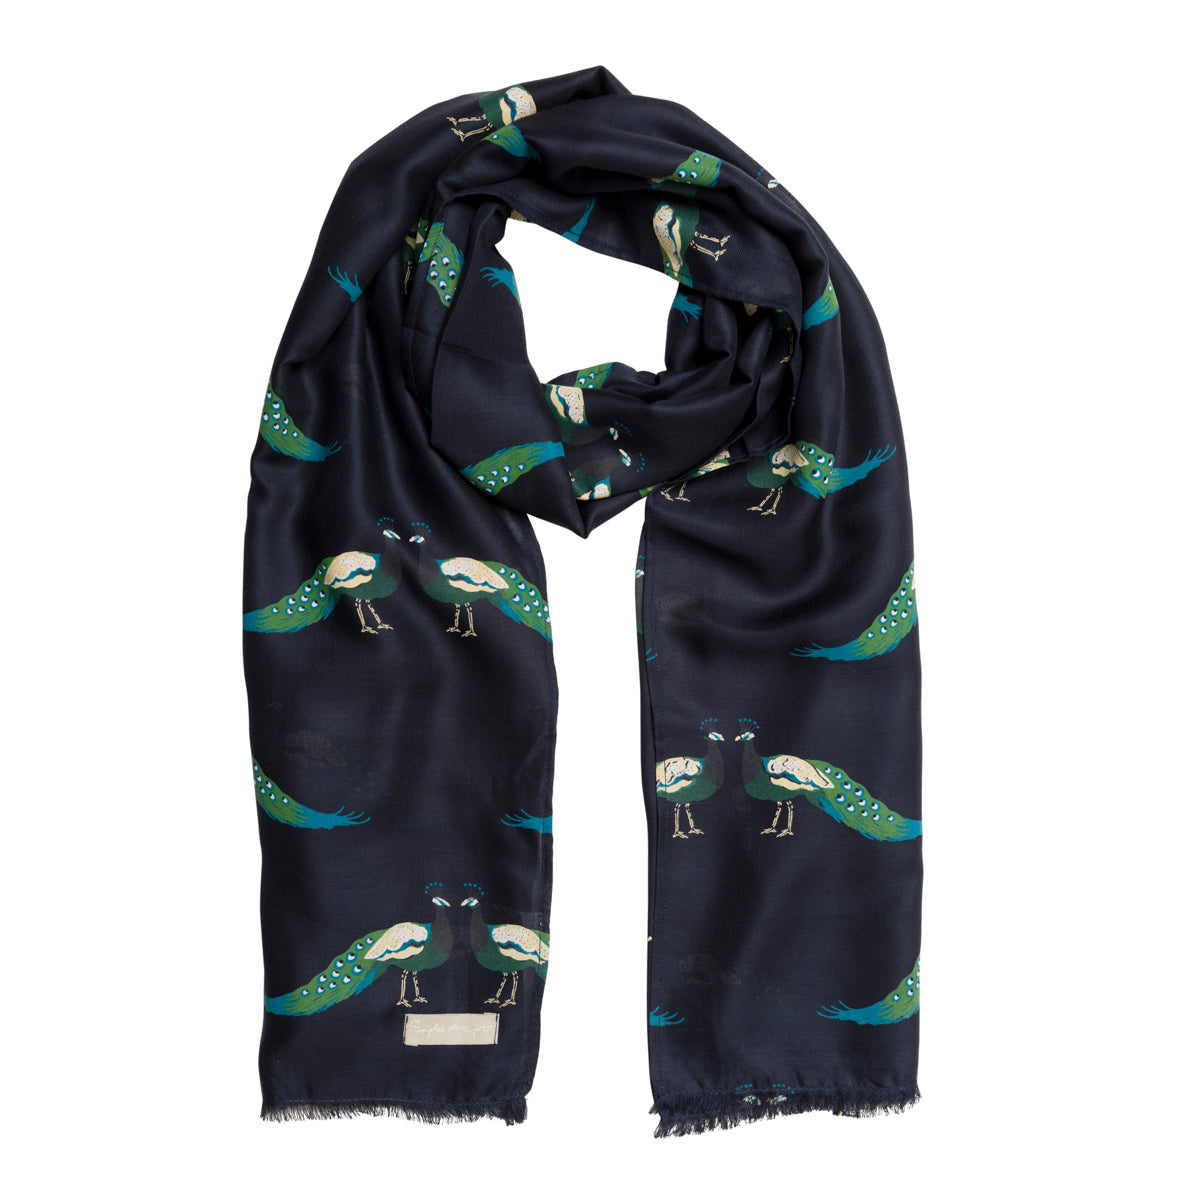 Peacocks Printed Scarf